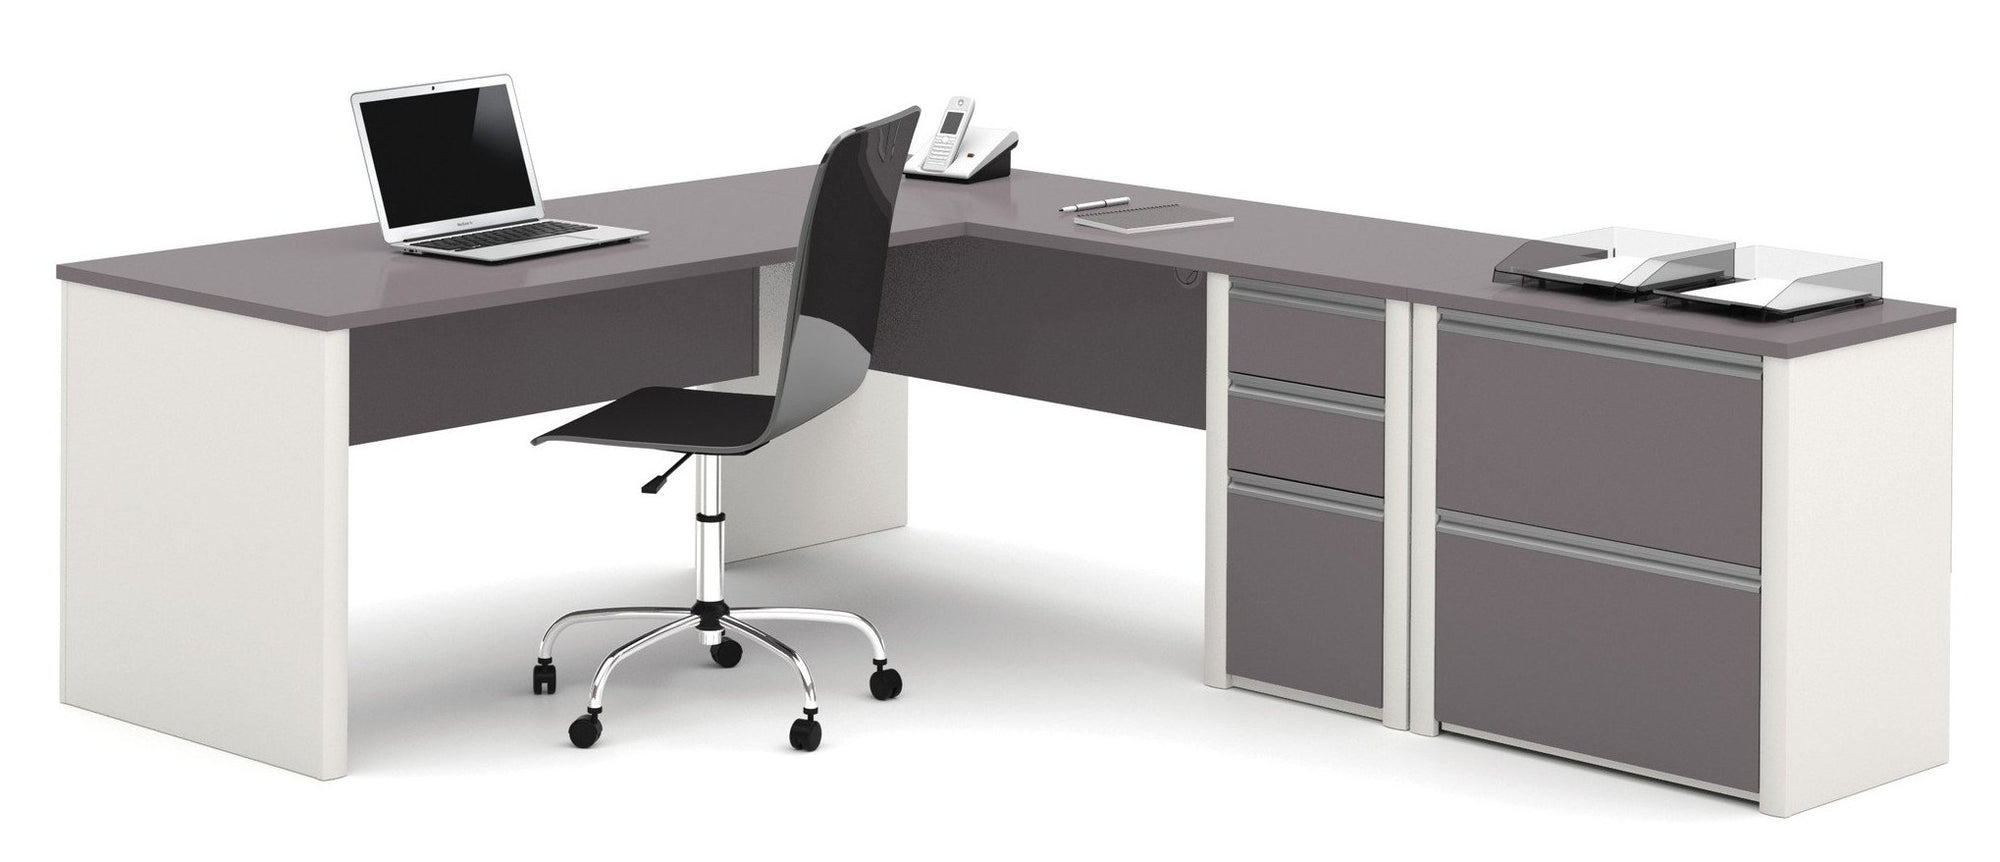 Slate U0026 Sandstone Single Ped L Shaped Office Desk With Included Lateral File